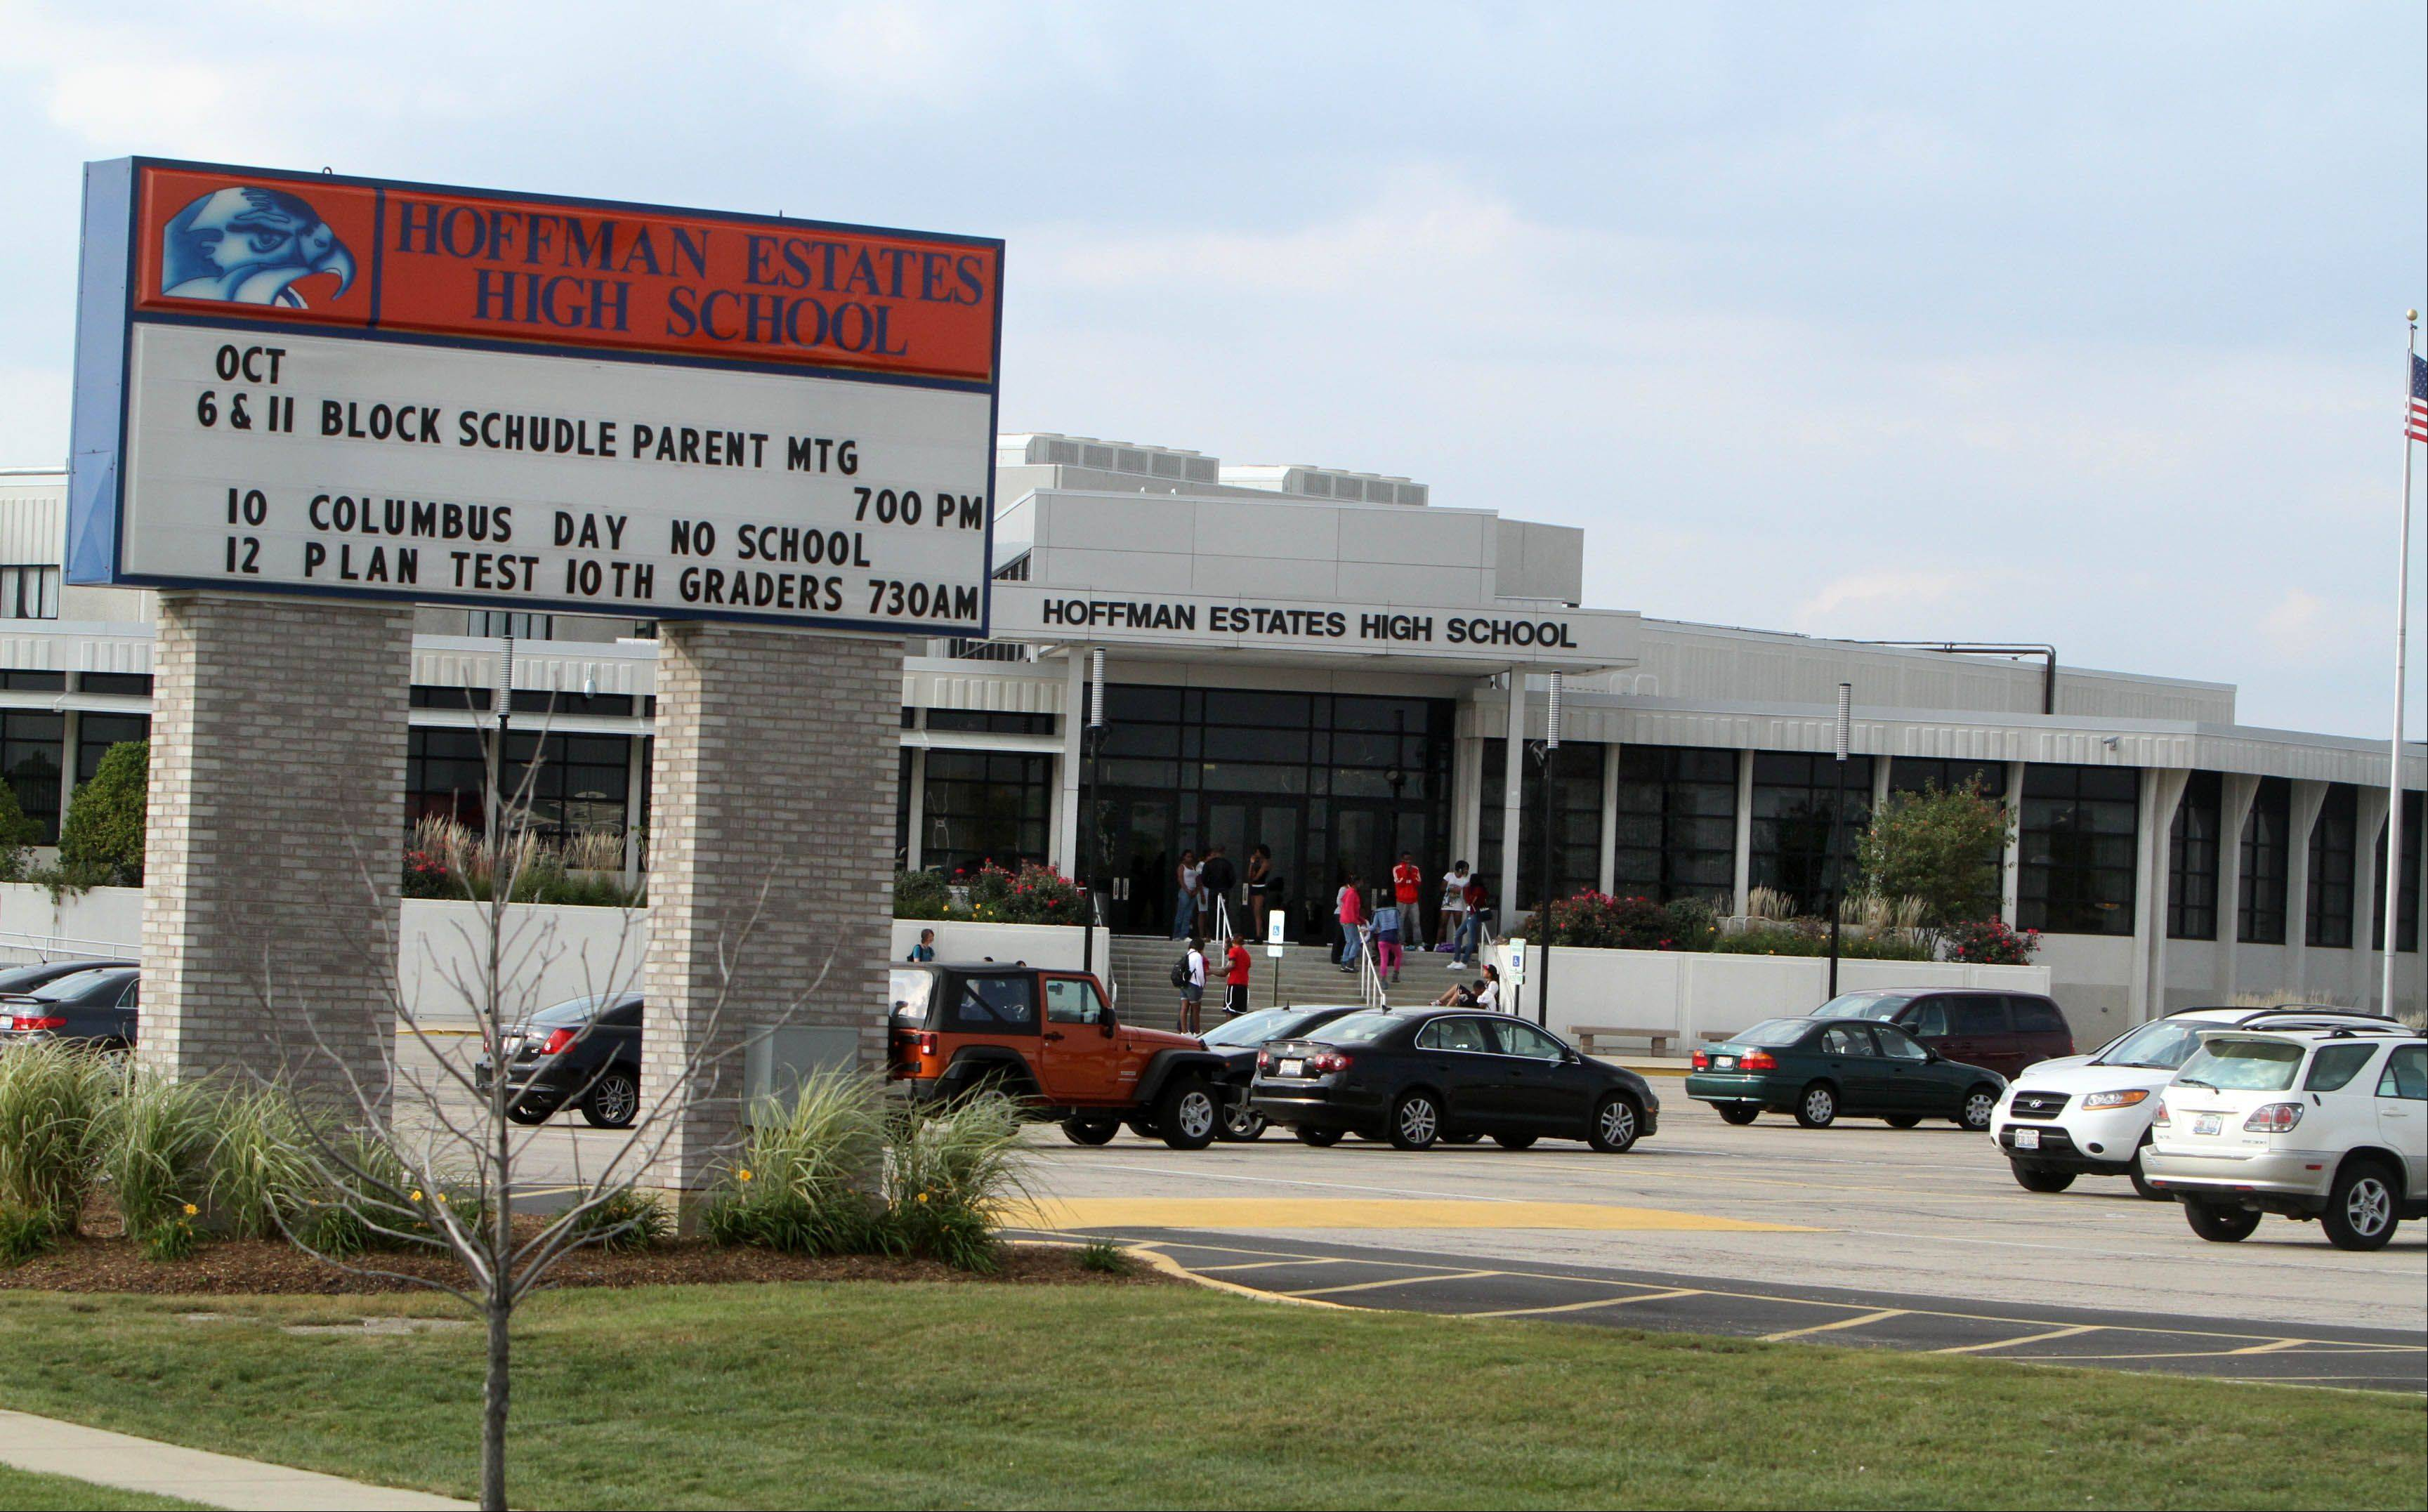 Officials from Palatine-Schaumburg High School District 211 have released a statement saying that reports of hazing involving the Hoffman Estates High School boys� varsity basketball team that surfaced last week did not involve sexual misconduct.